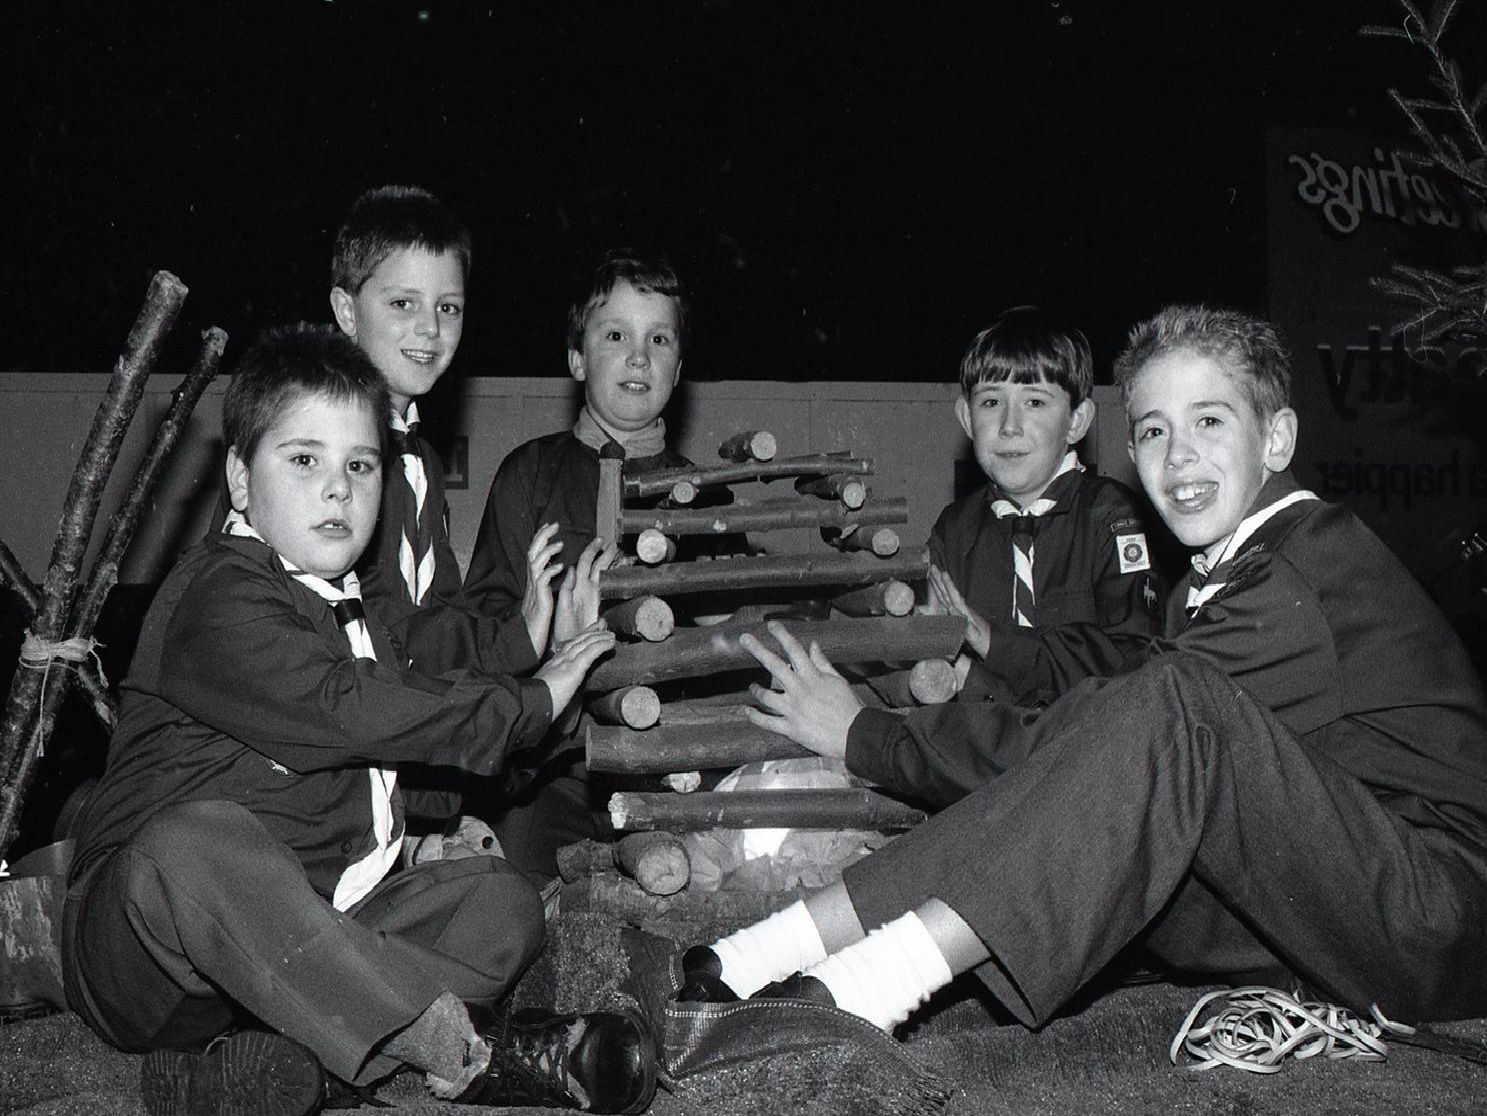 Preston scouts keeping warm (from right) Peter Nickson, Mark Ashurst, Steven Howie, Christopher McGuill and Raymond Long. The scouts were taking part in the spectacular annual Torchlight Parade in Preston town centre